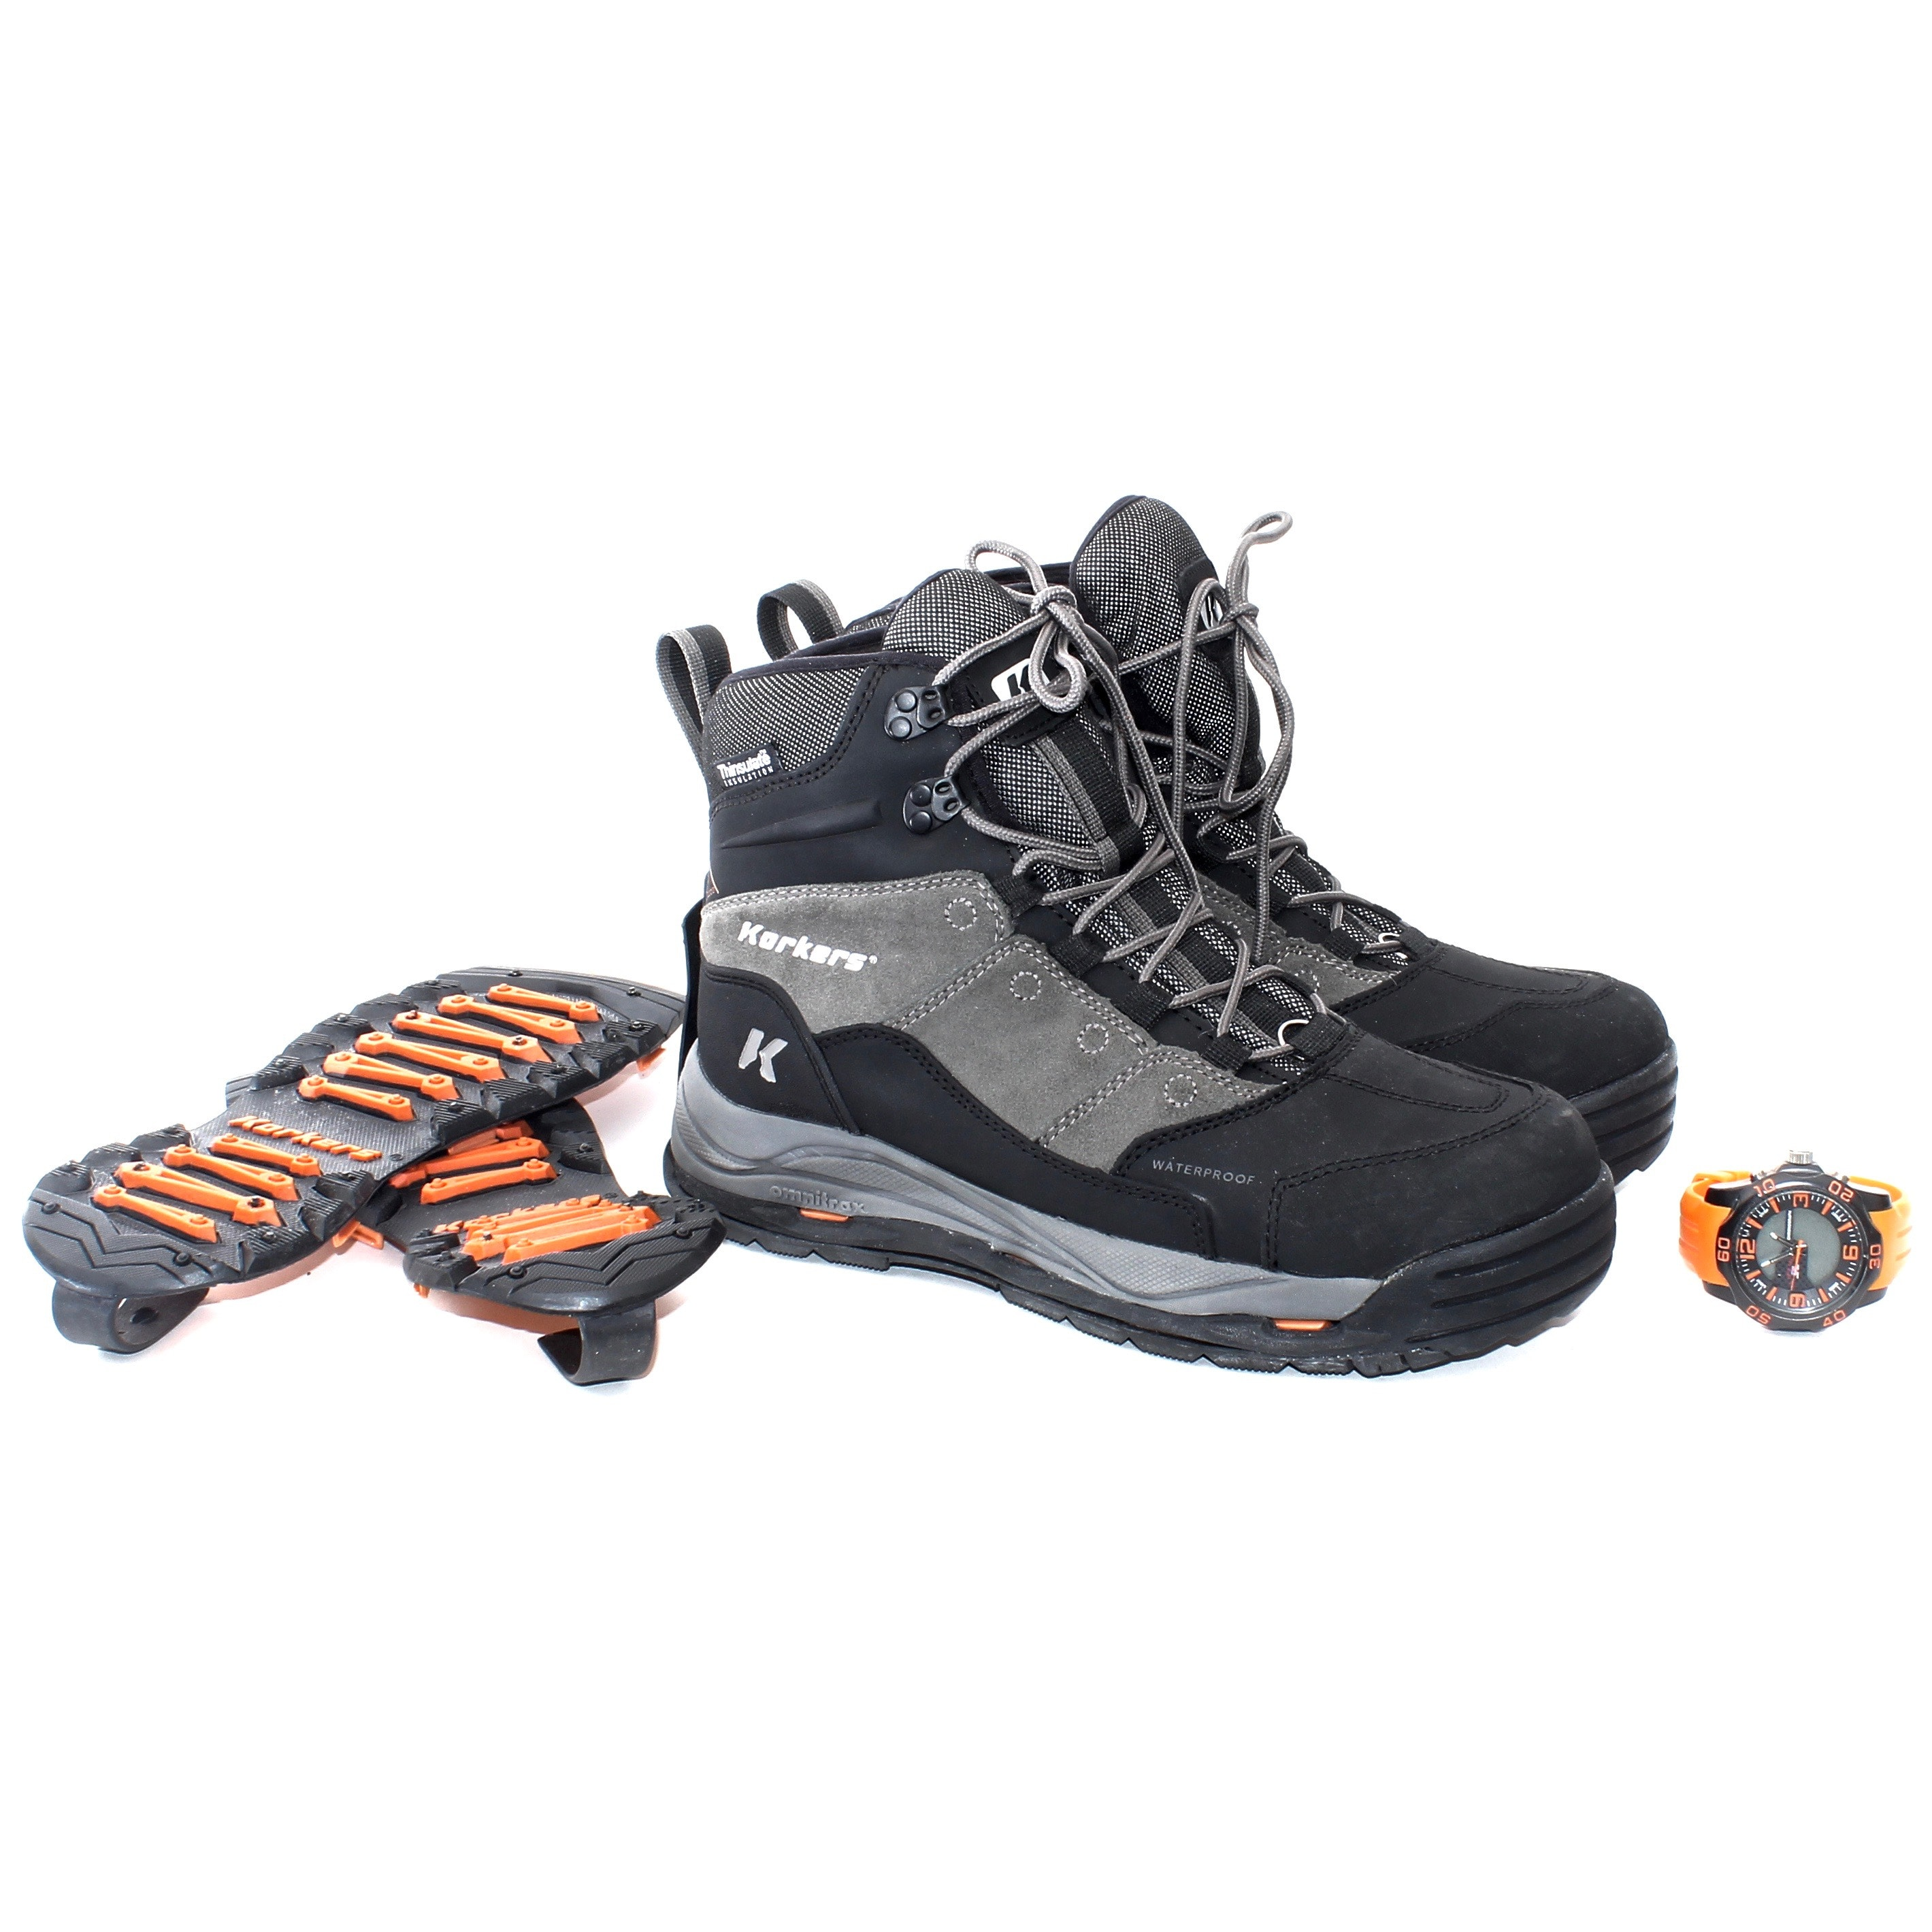 Korkers Omnitrox Insulated Sporting Boots and U.S. Polo Assoc Watch